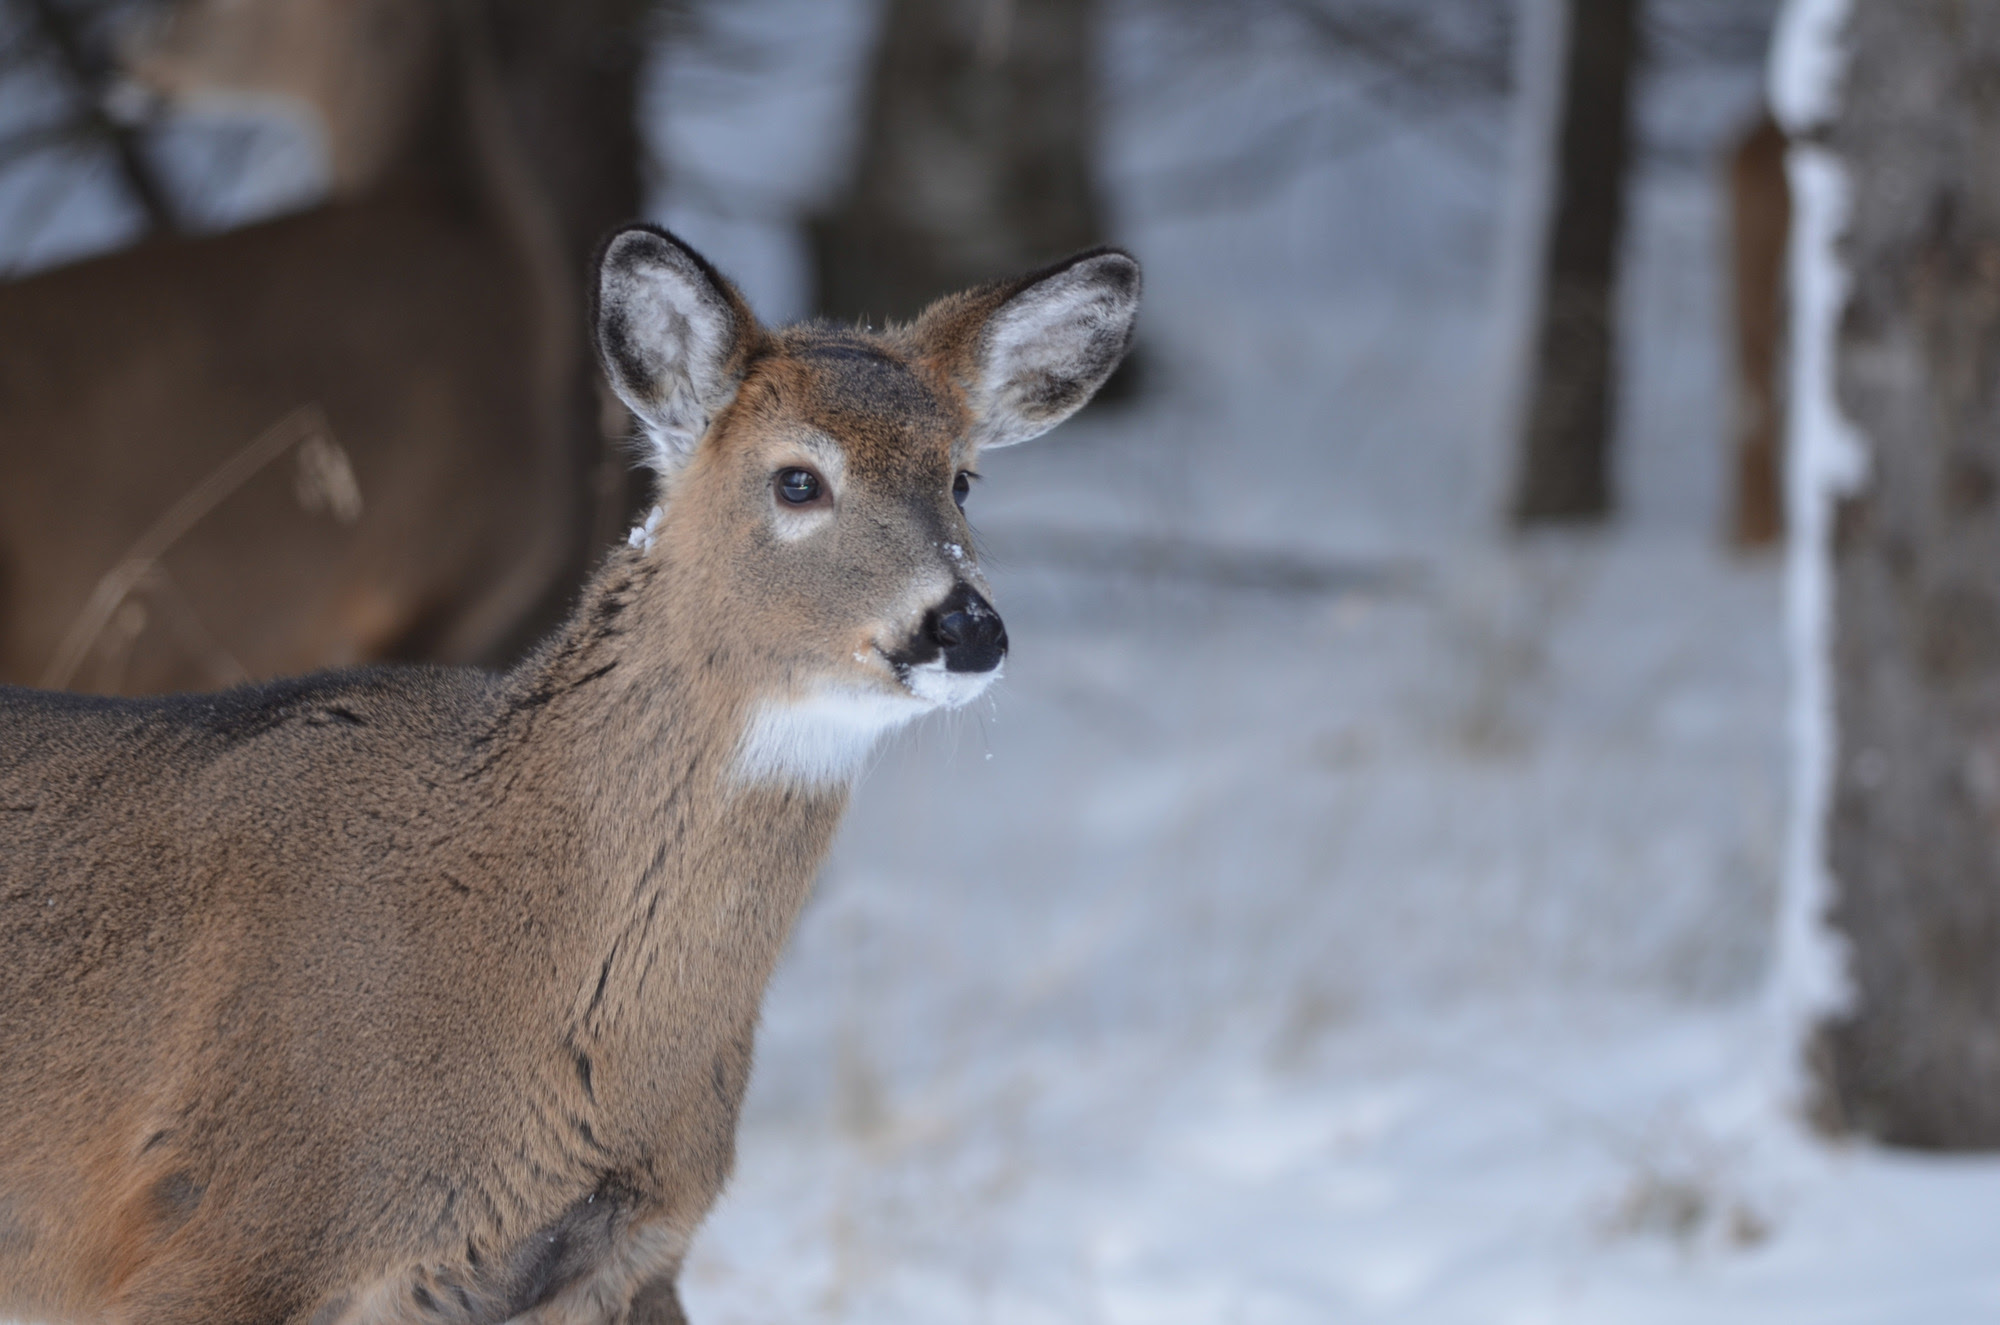 White-tailed deer are the subject of a new multi-year study by the Michigan DNR to determine seasonal migration and abundance in the U.P.